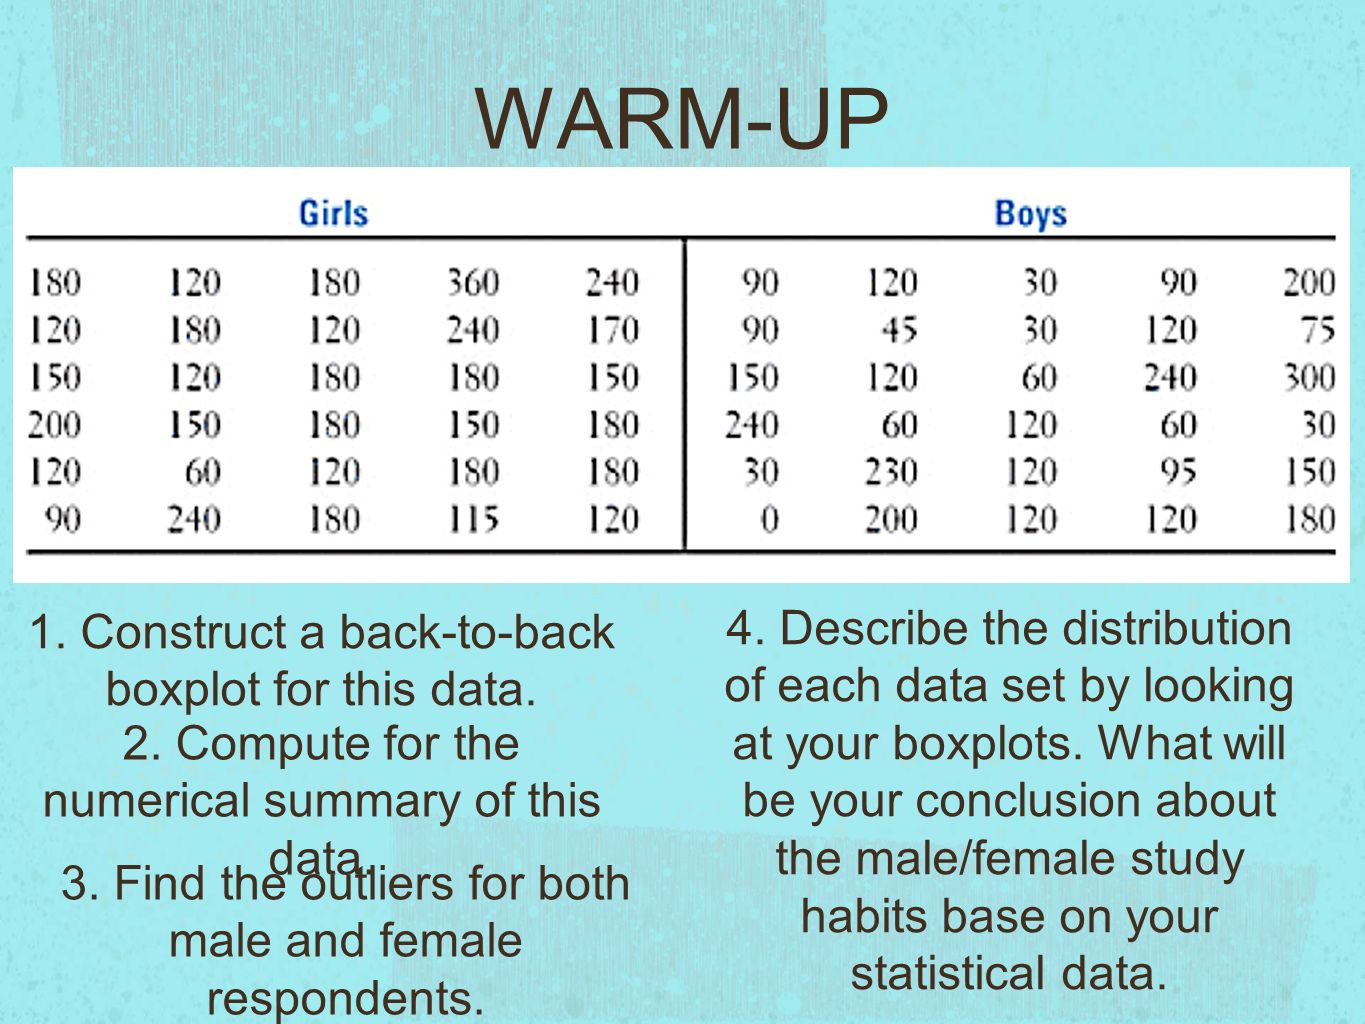 standard deviation warm up do girls study more than boys we  3 warm up